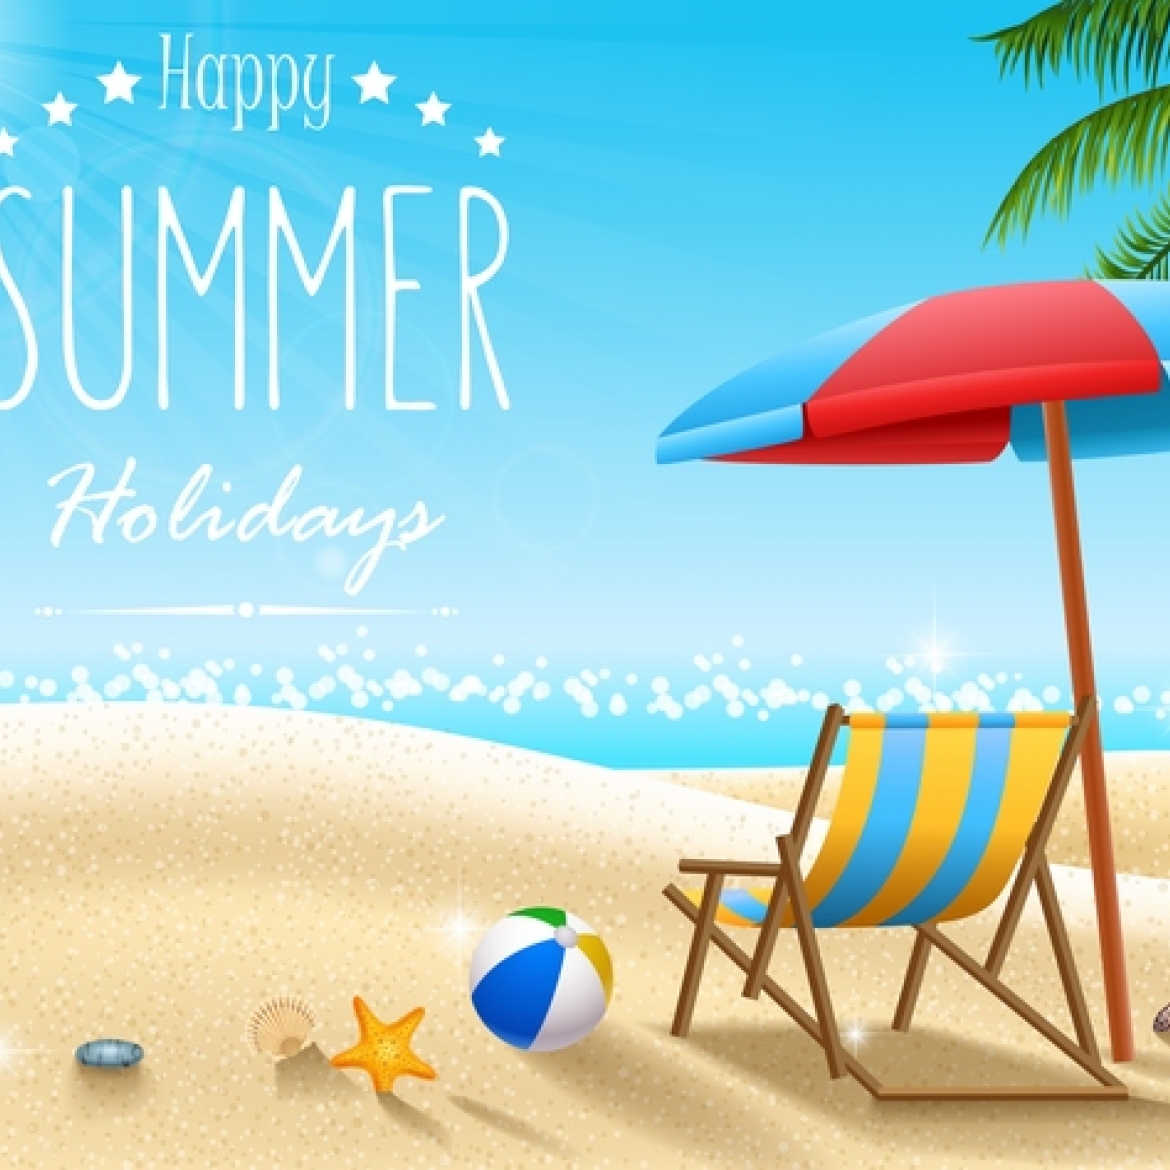 Summer holiday travel background design vectors